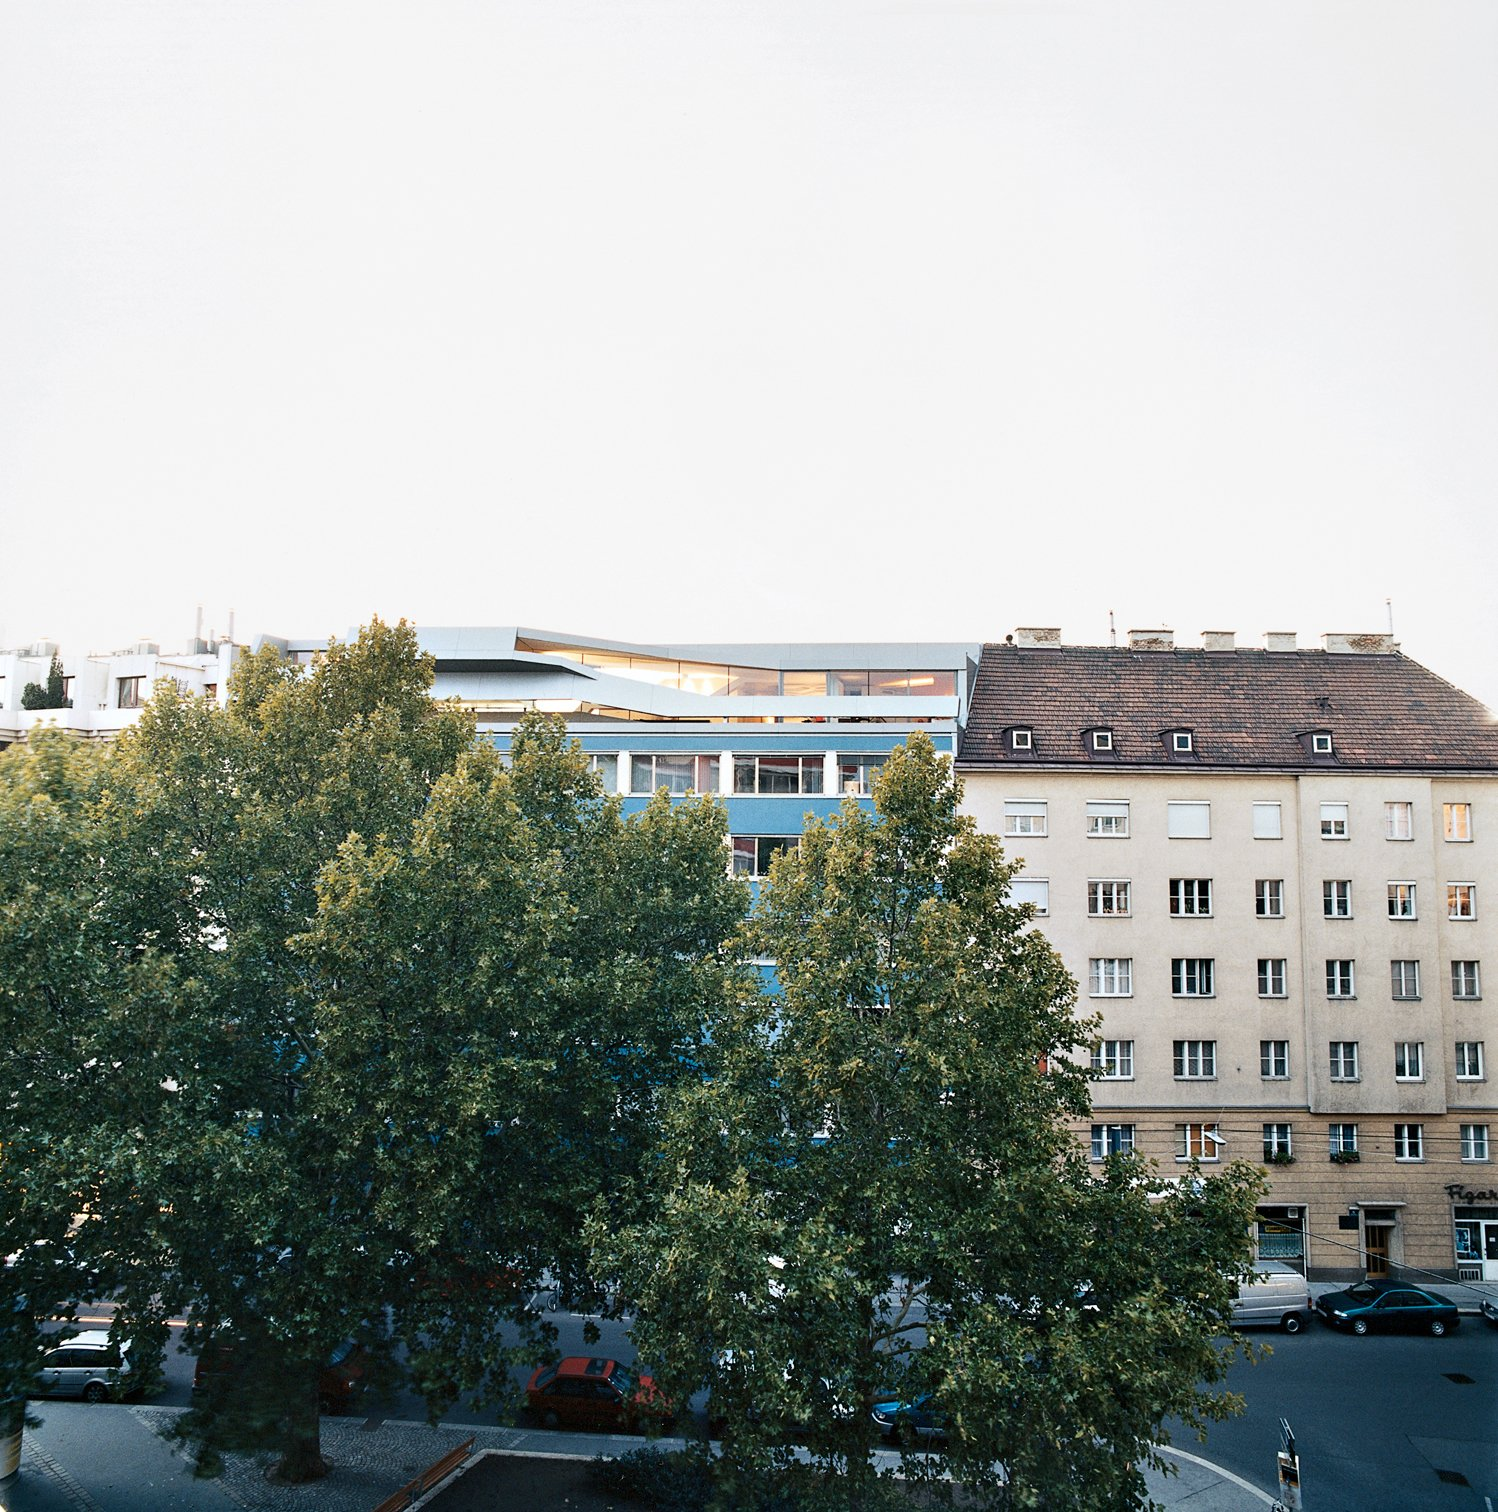 The penthouse is boldly inserted within the traditional rooftops in Vienna's Wieden district.  Photo 2 of 16 in The Penthouse Has Landed